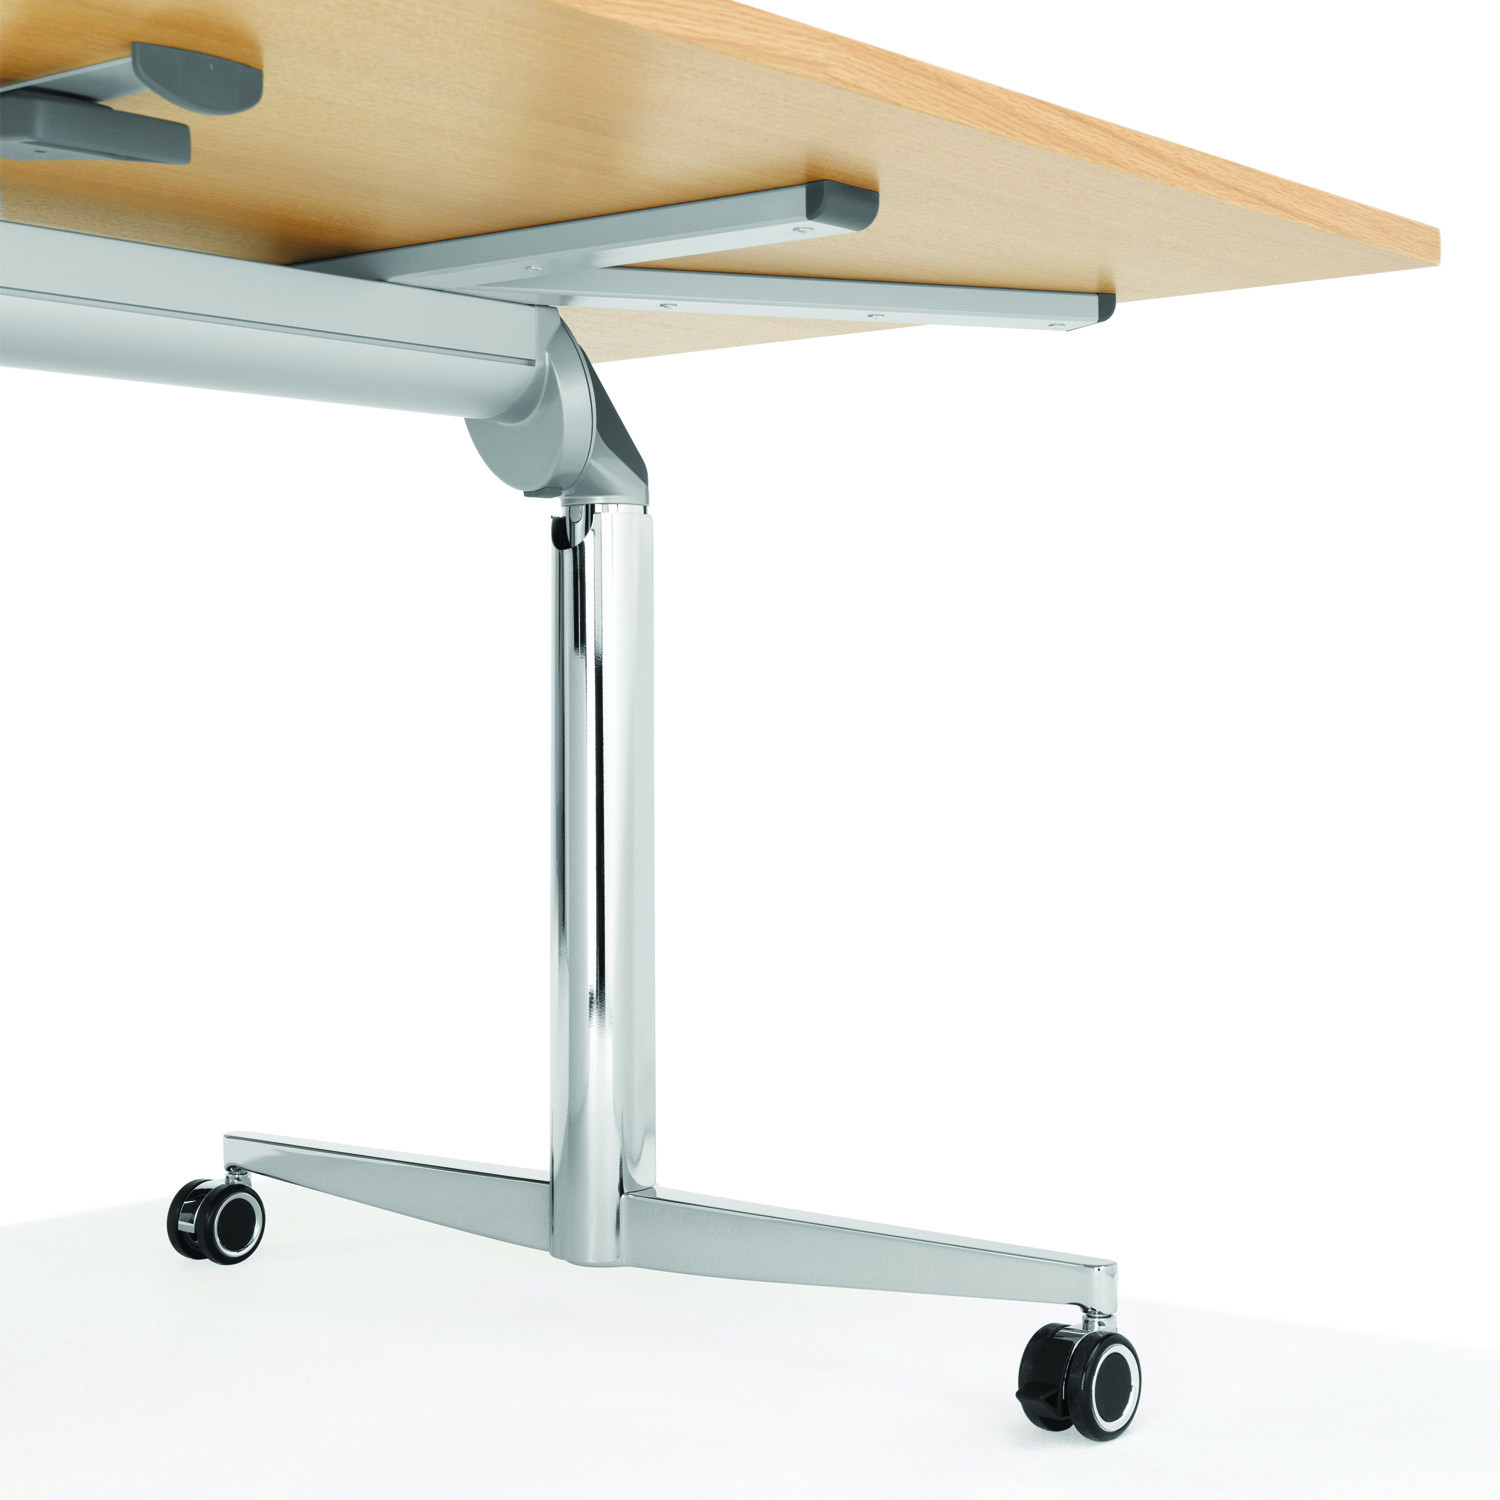 6000 San_Siro Table Series - folding system detail